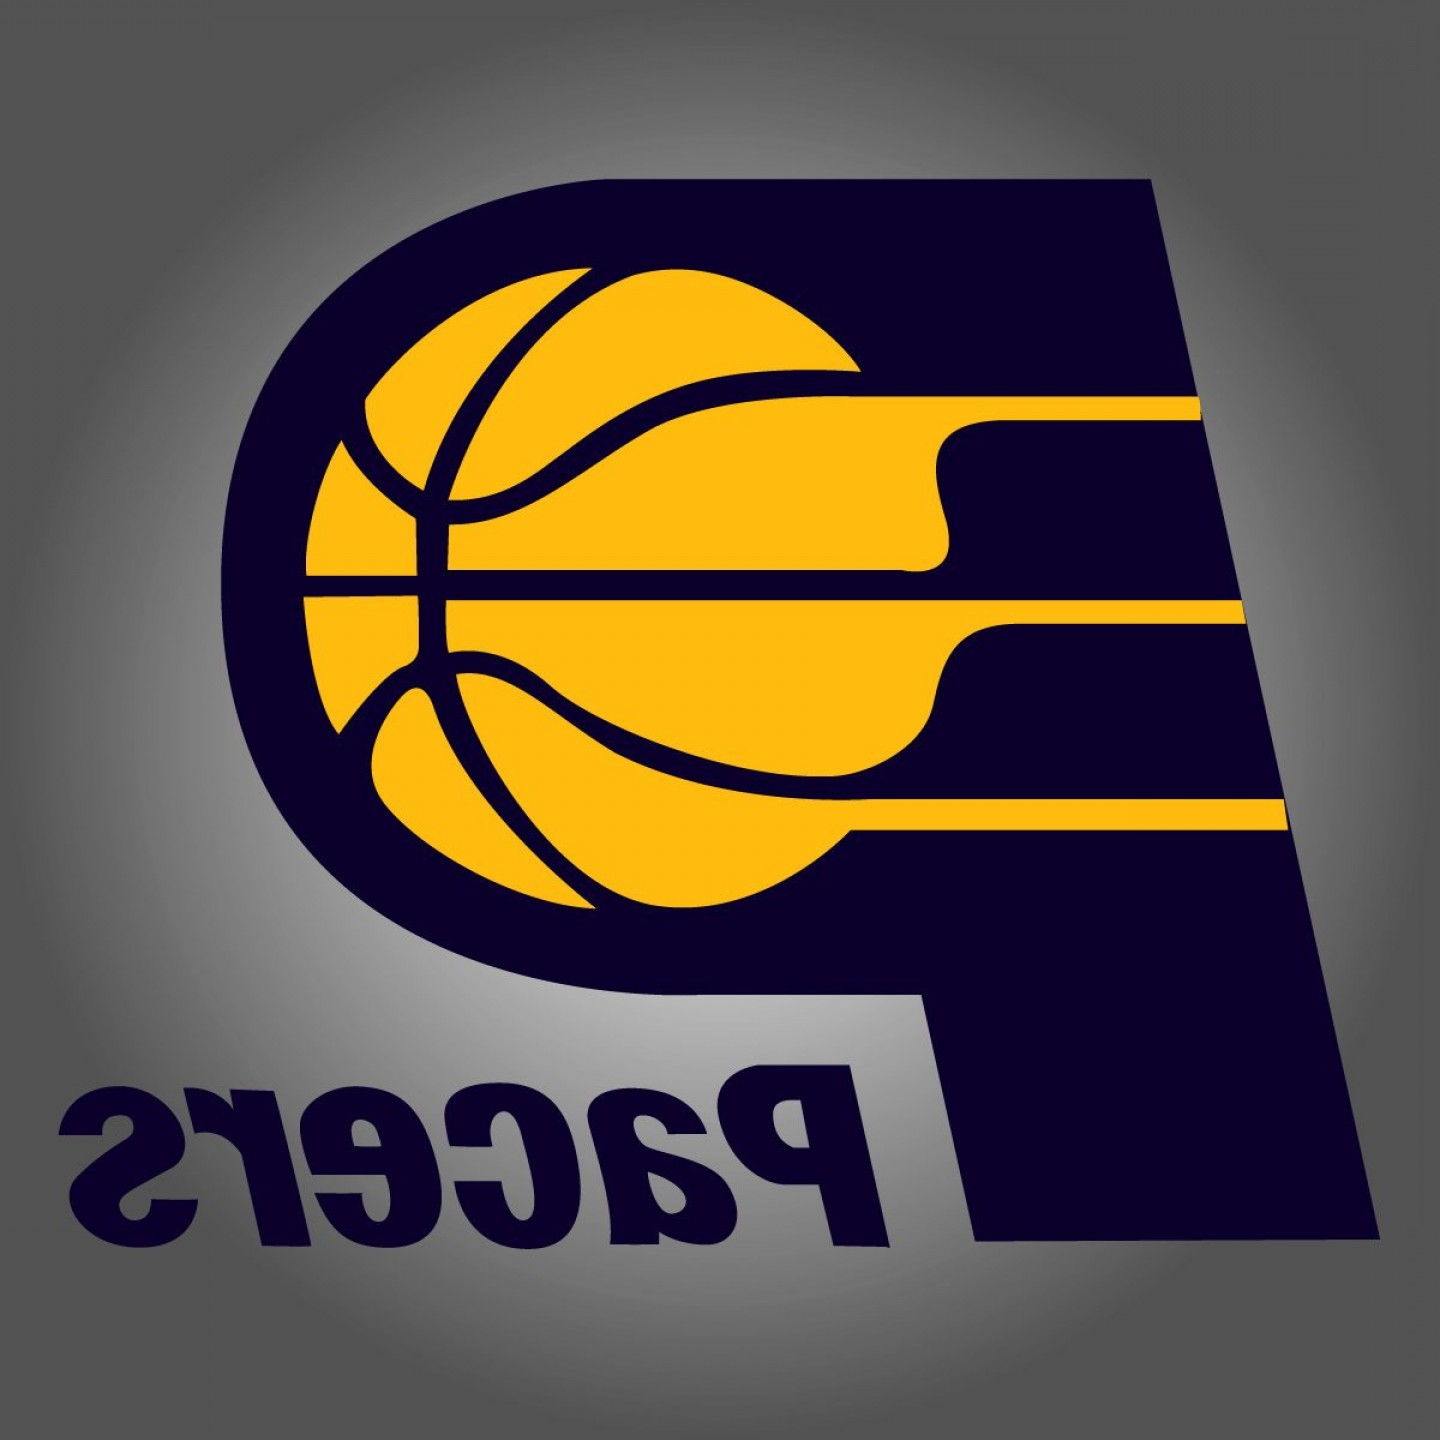 Indiana Pacers Logo Vector: Indiana Pacers Nba Svg Png Dxf Eps Jpeg